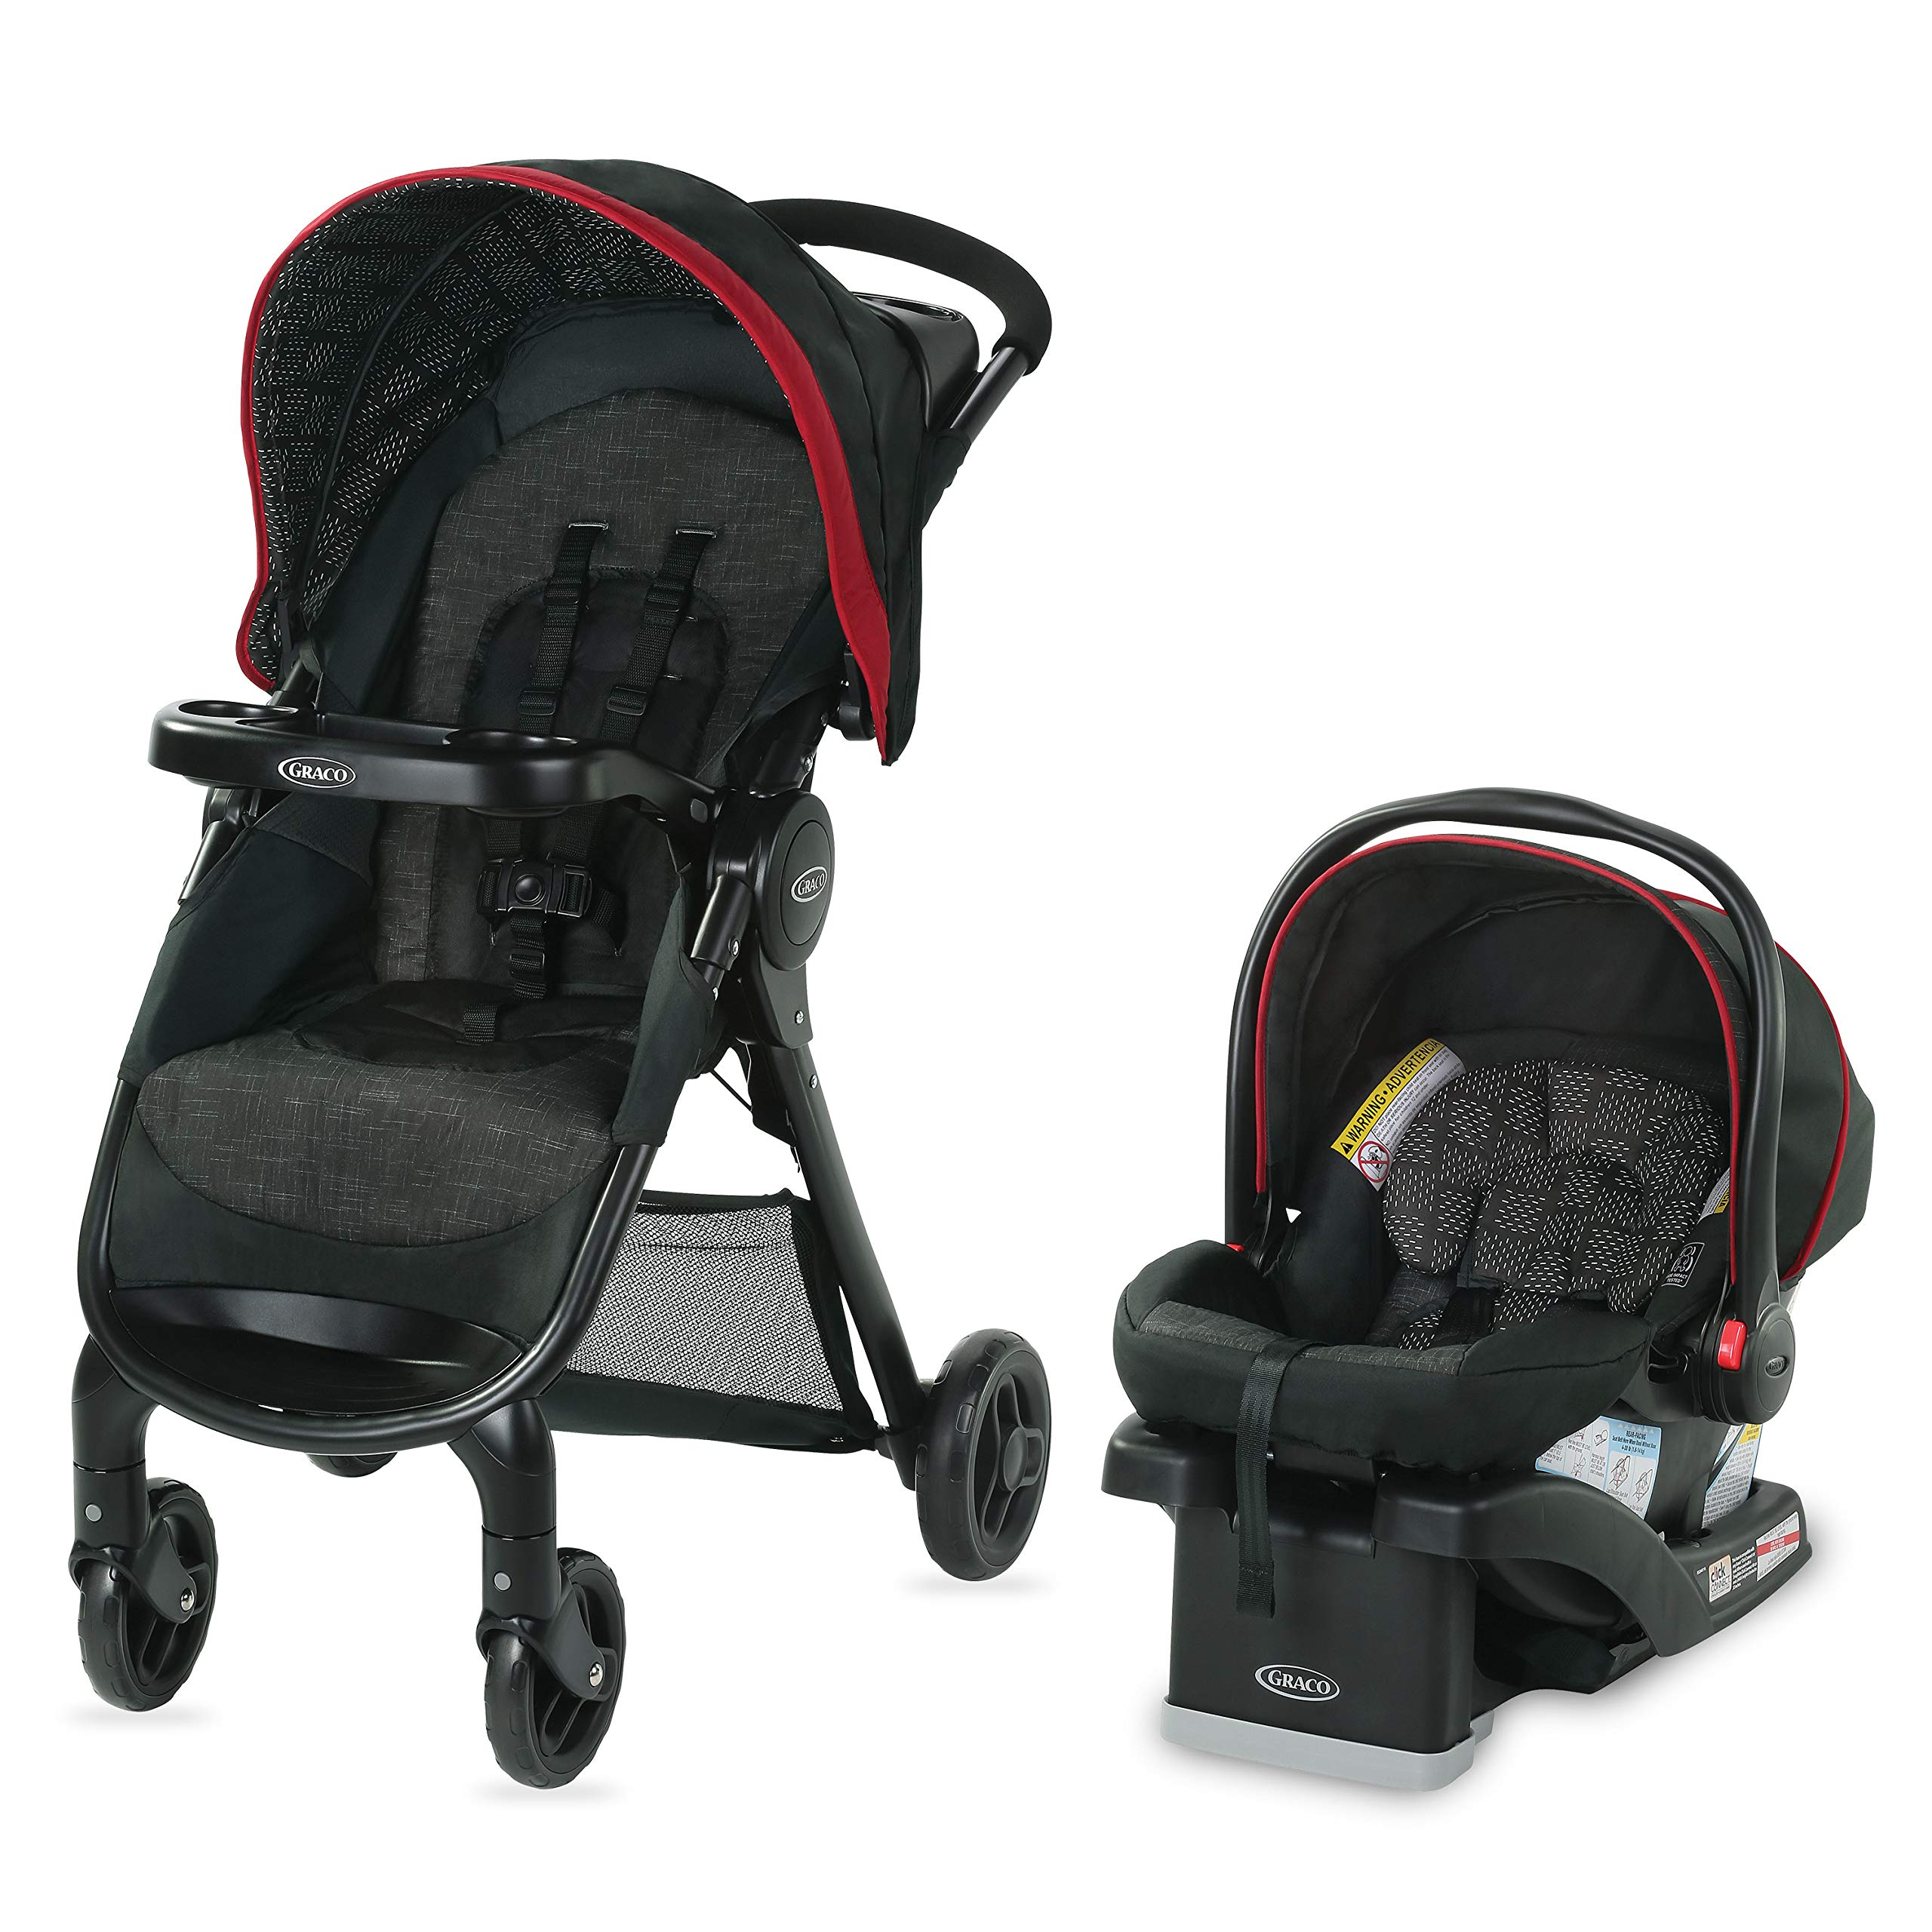 Graco FastAction SE Travel System | Includes FastAction SE Stroller and SnugRide 30 LX Infant Car Seat, Hilt by Graco